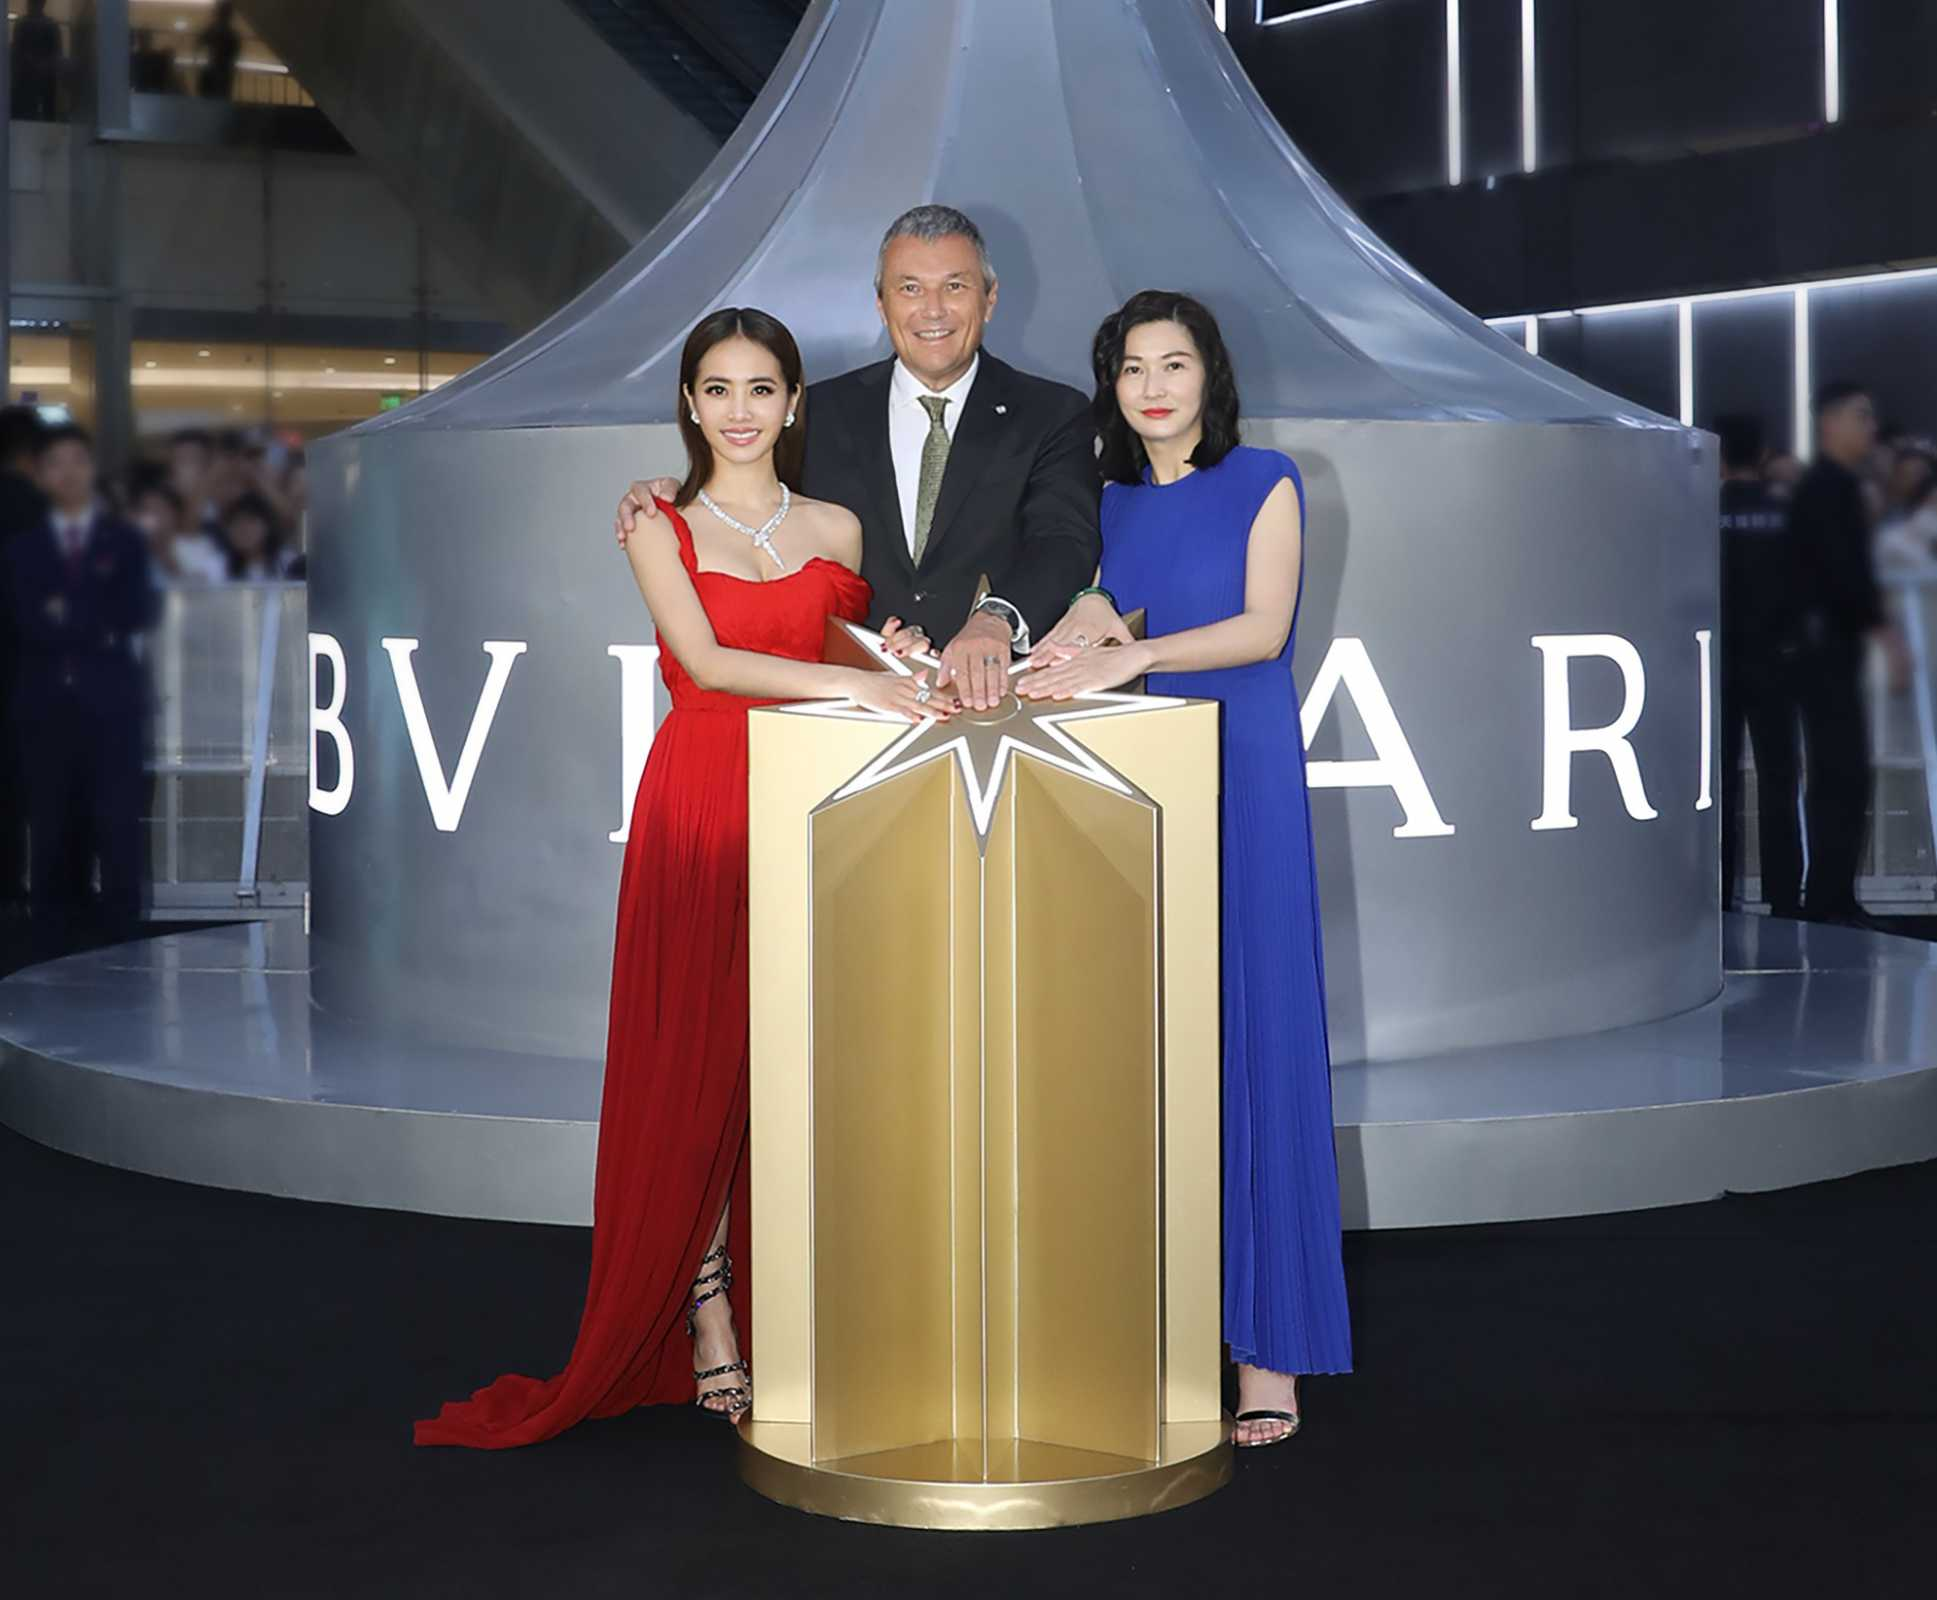 BVLGARI: открытие выставки SerpentiForm в Чэнду (Китай)